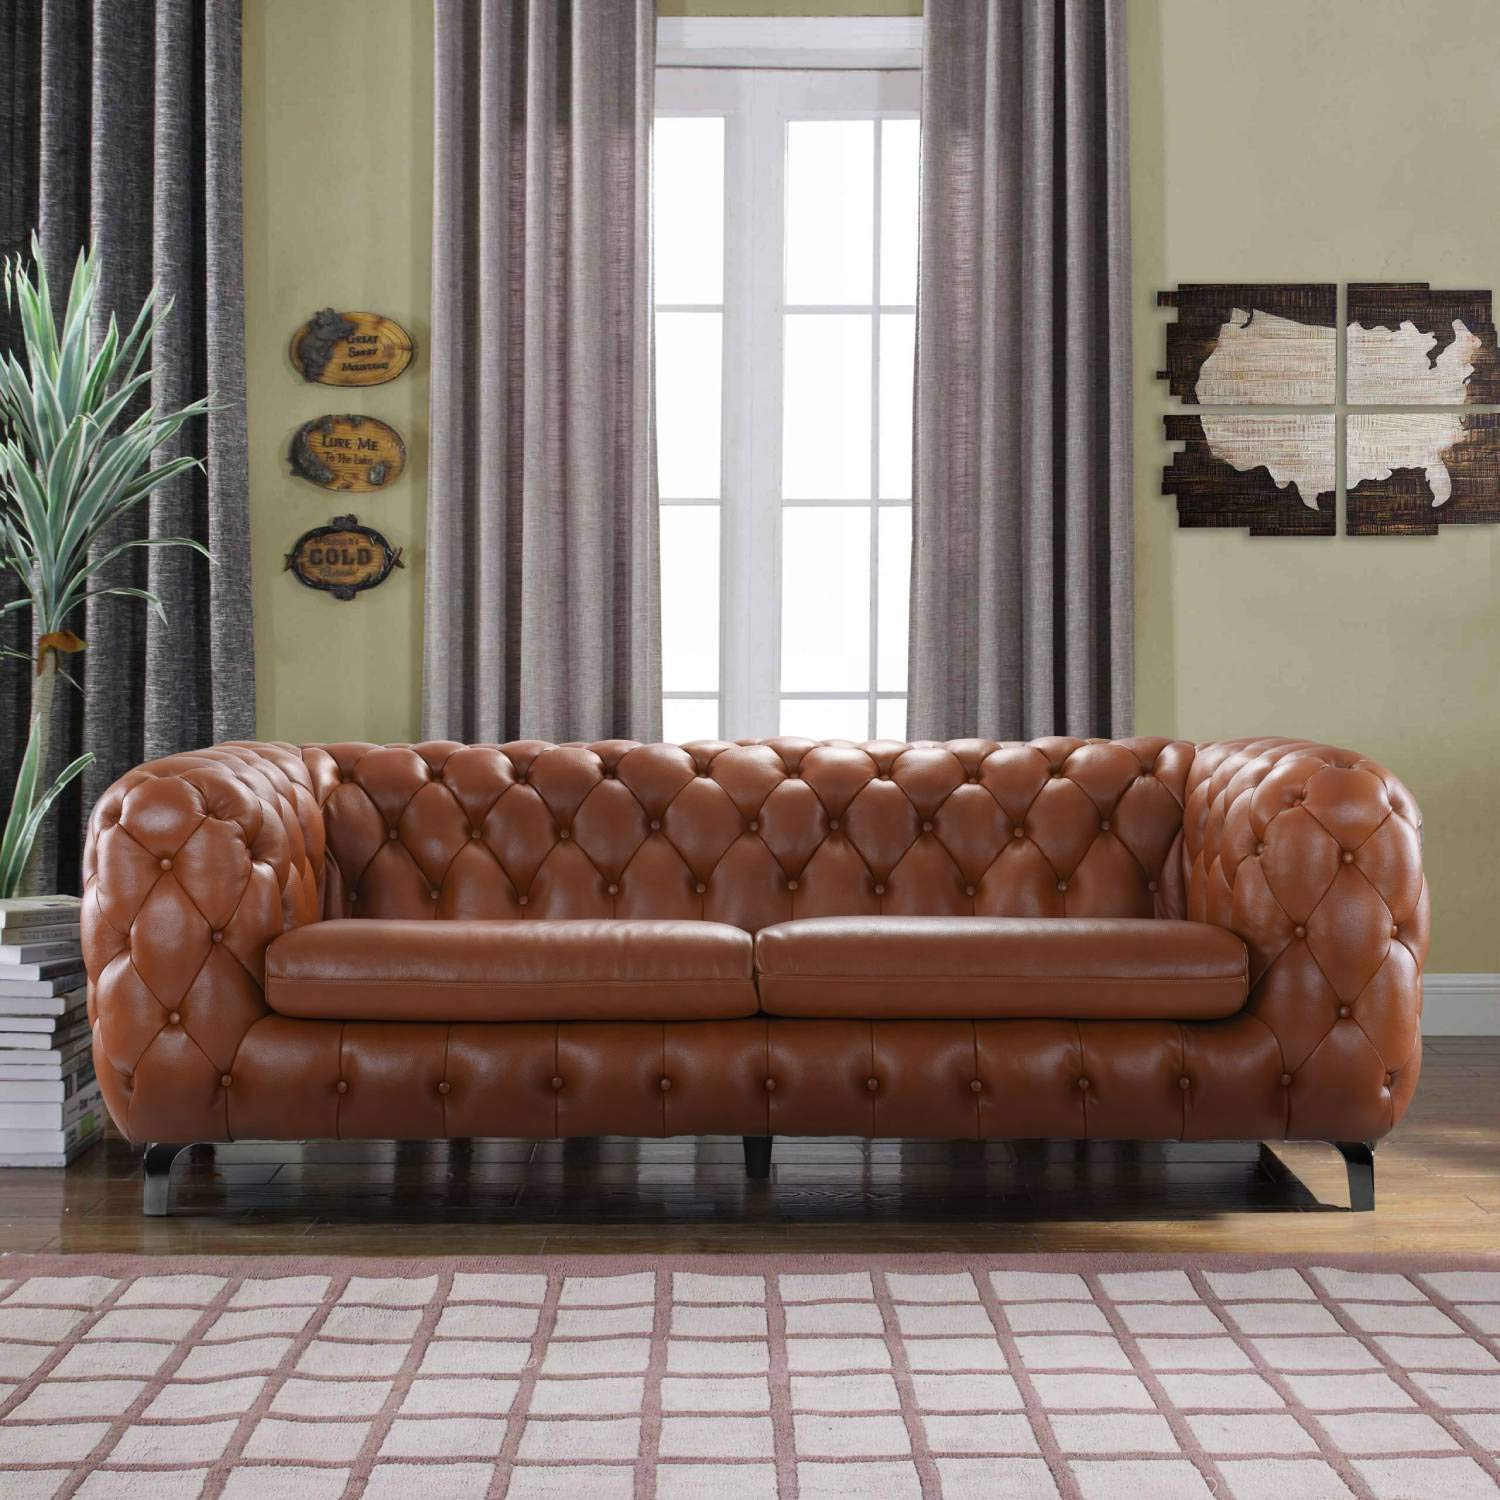 Amazon.com: Casa Andrea Modern Tufted Button Leather ...